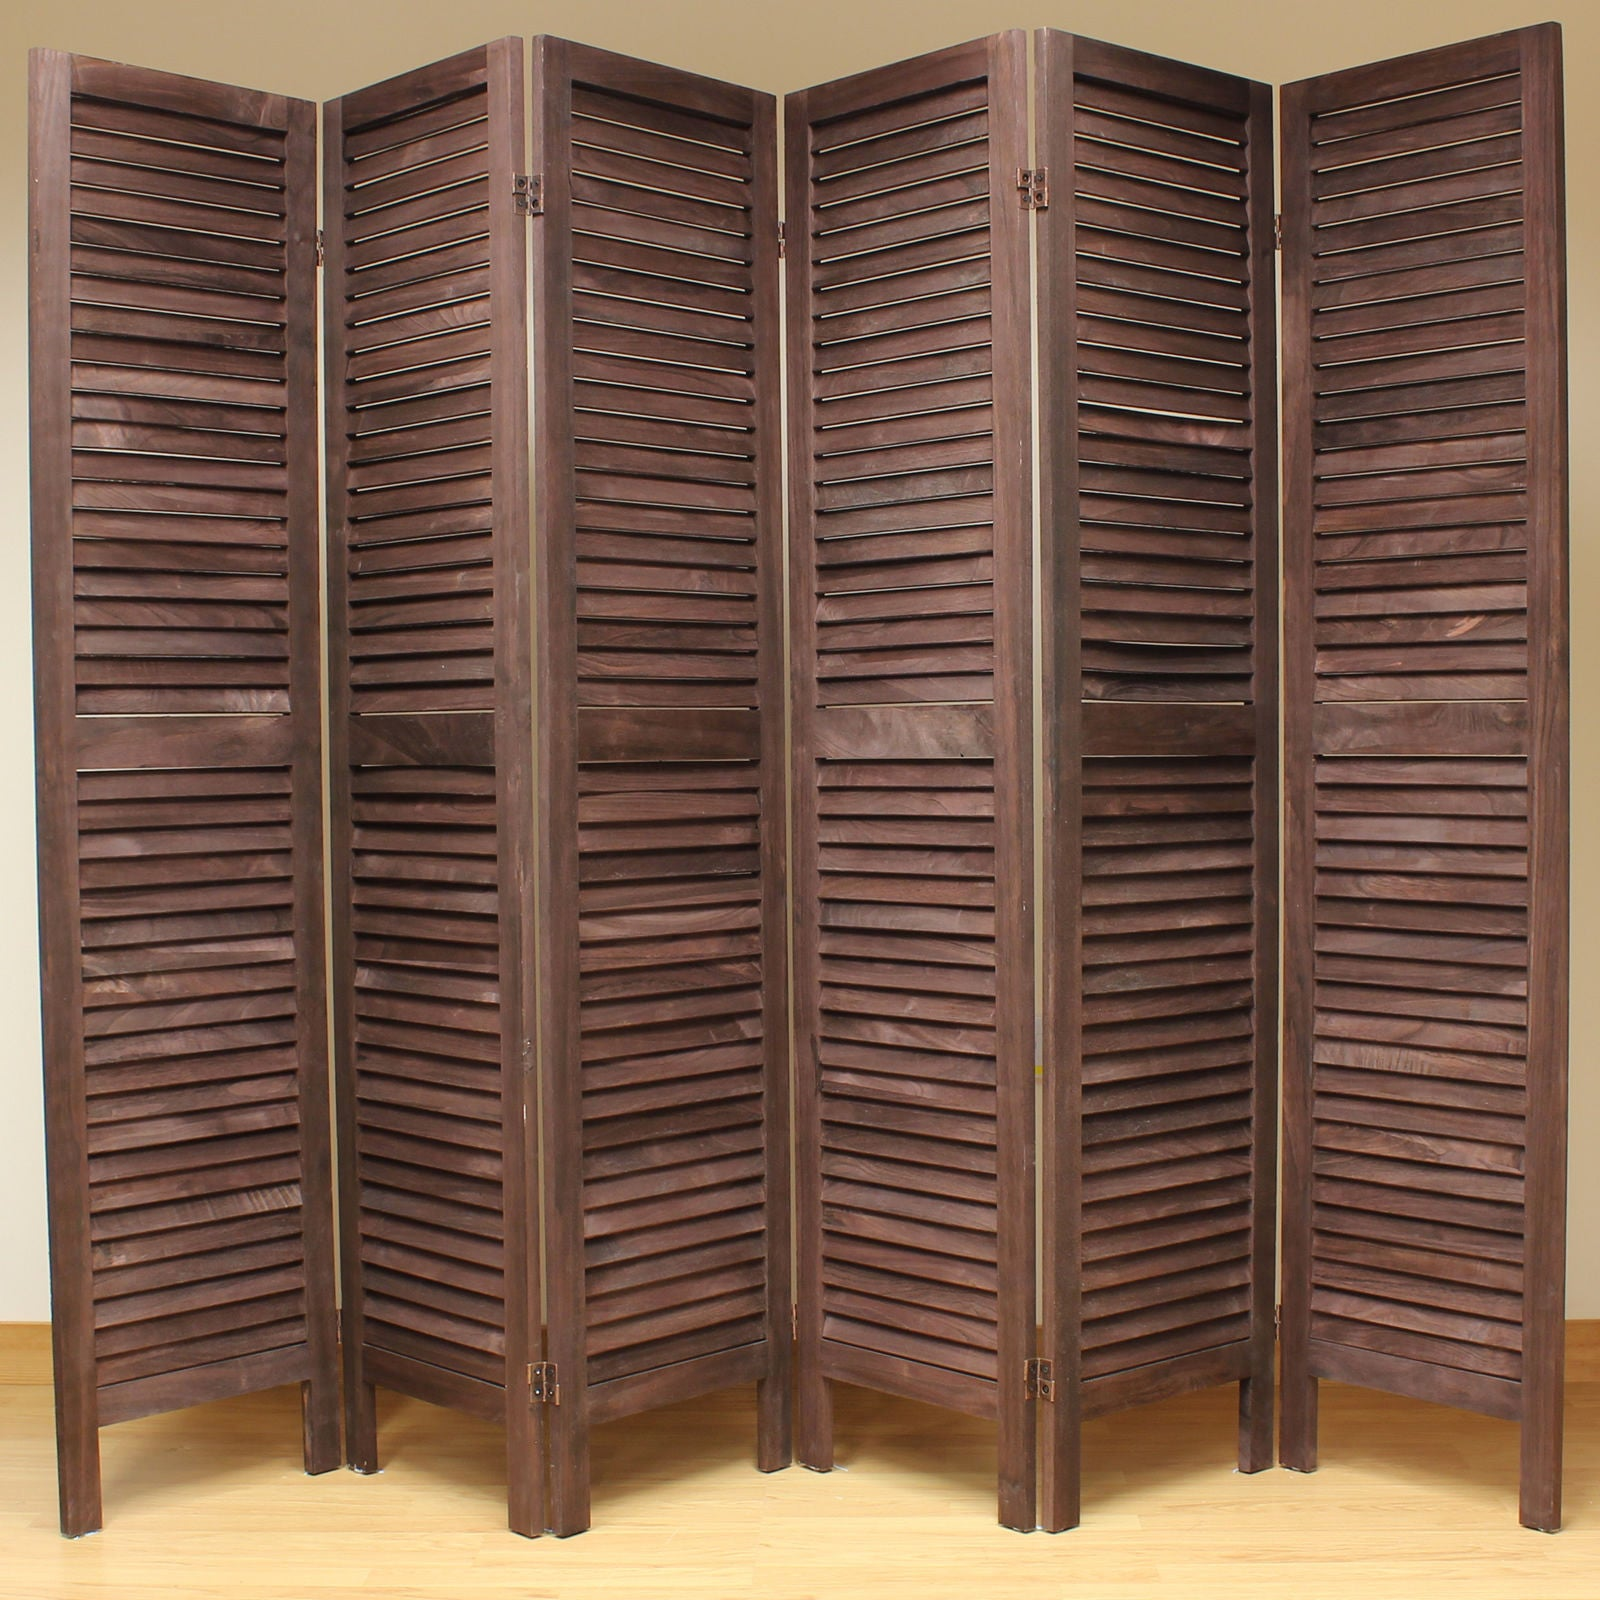 Wooden slat room divider screen panel brown